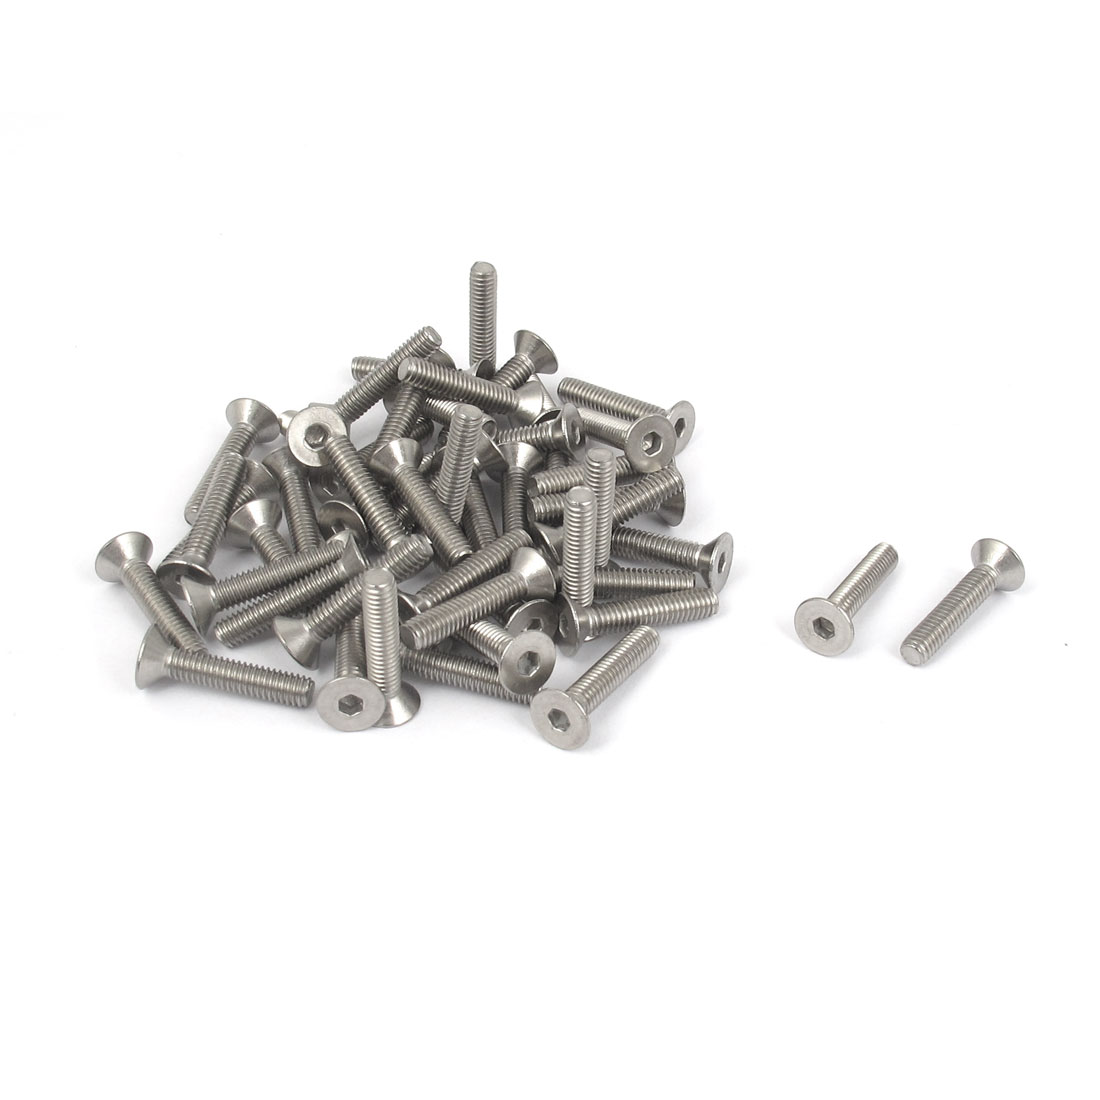 M4 x 20mm Metric 304 Stainless Steel Hex Socket Countersunk Flat Head Screw Bolts 50PCS